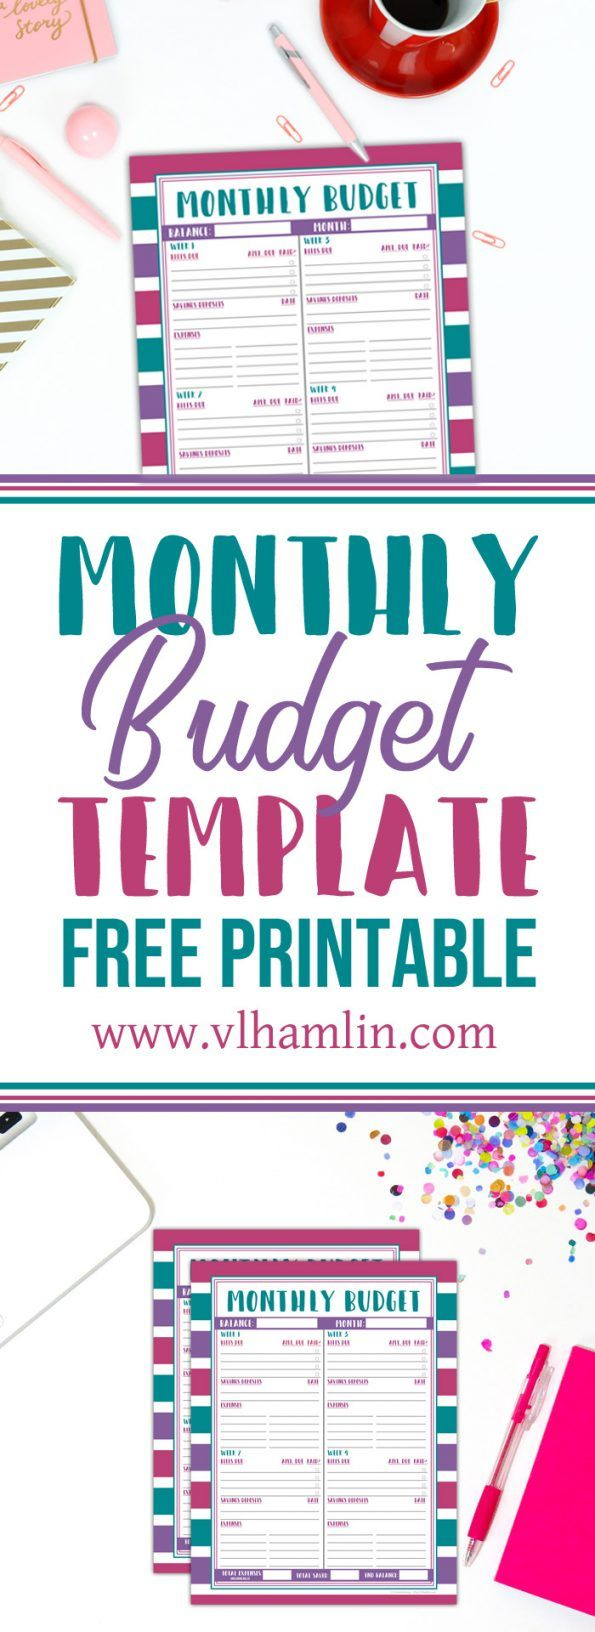 Monthly Budget Template Free Printable Free Printables Pinterest